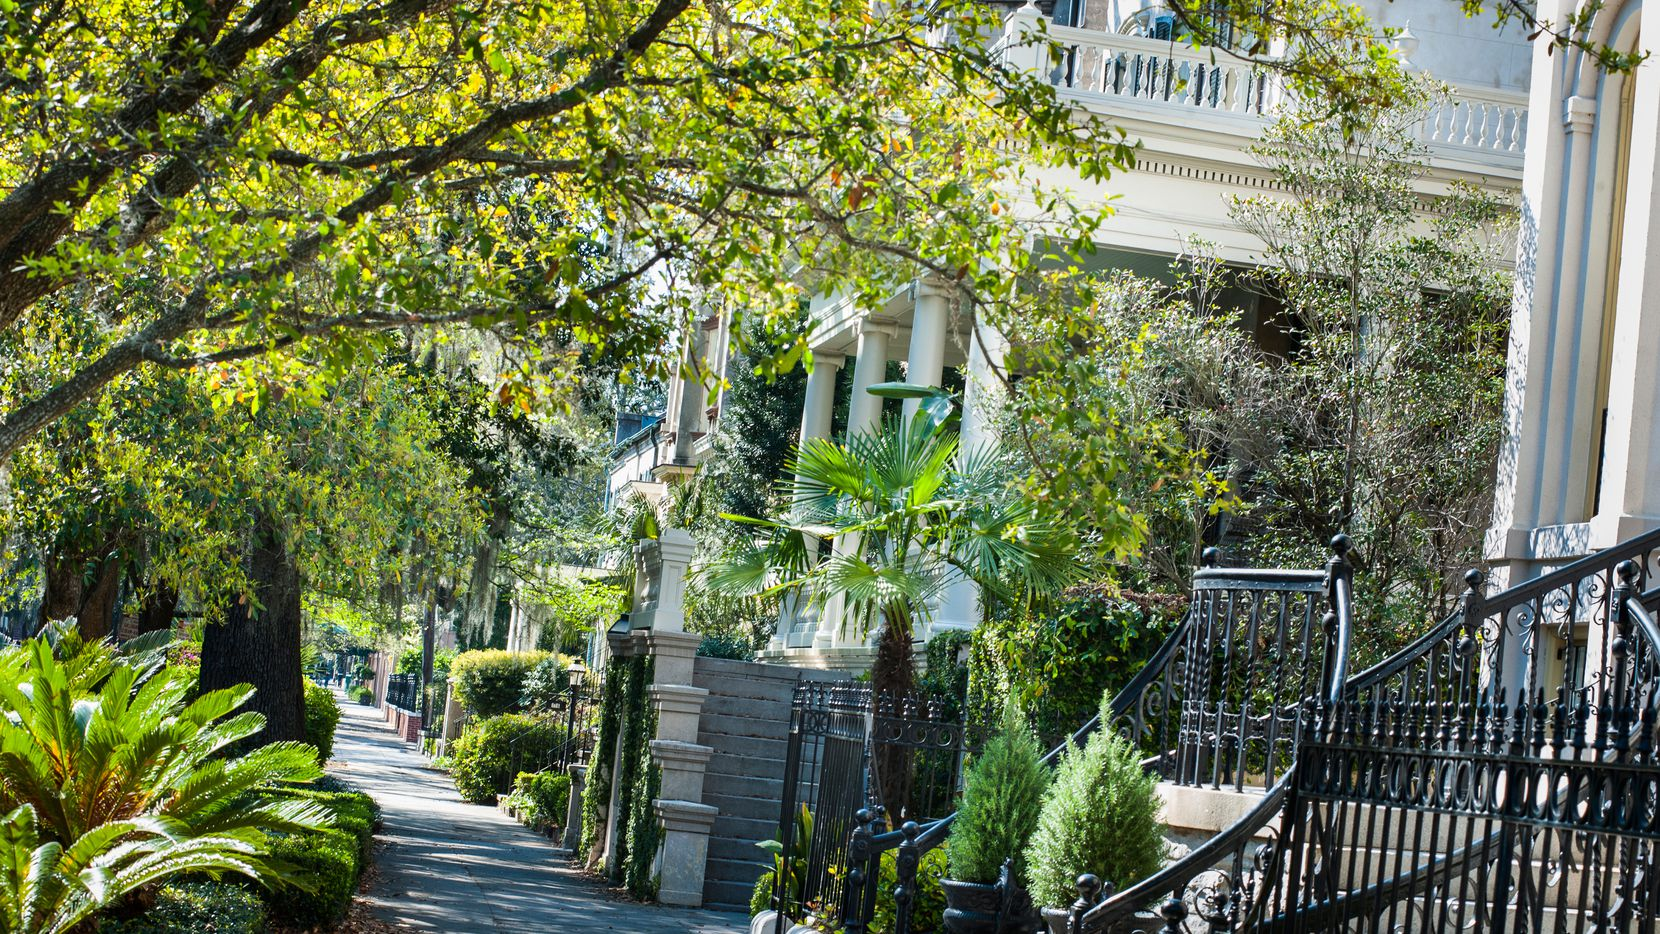 The Savannah Historic District has ample Southern charm.